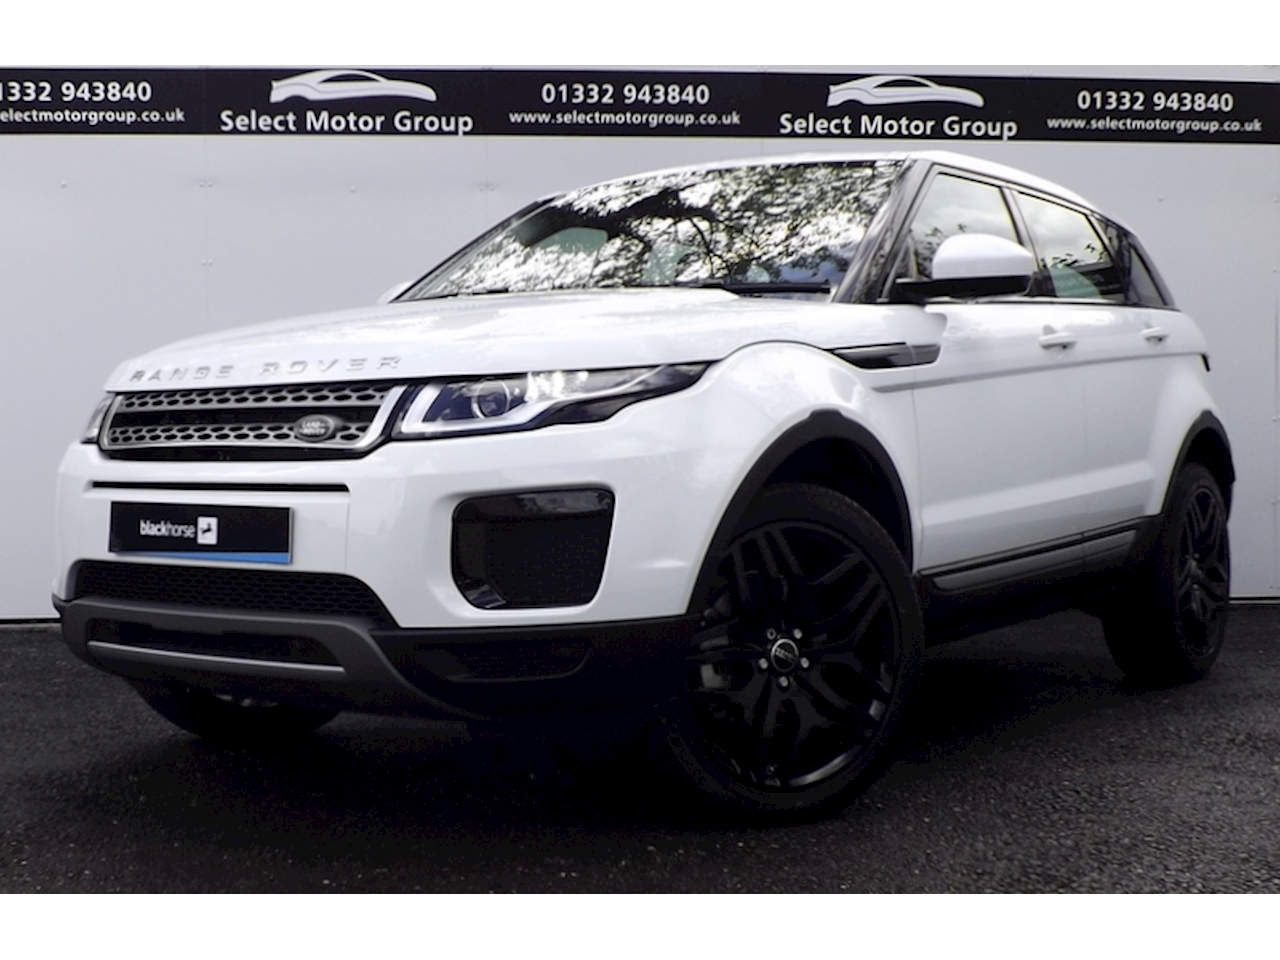 Range Rover Evoque 2.0 TD4 SE Estate Automatic Diesel